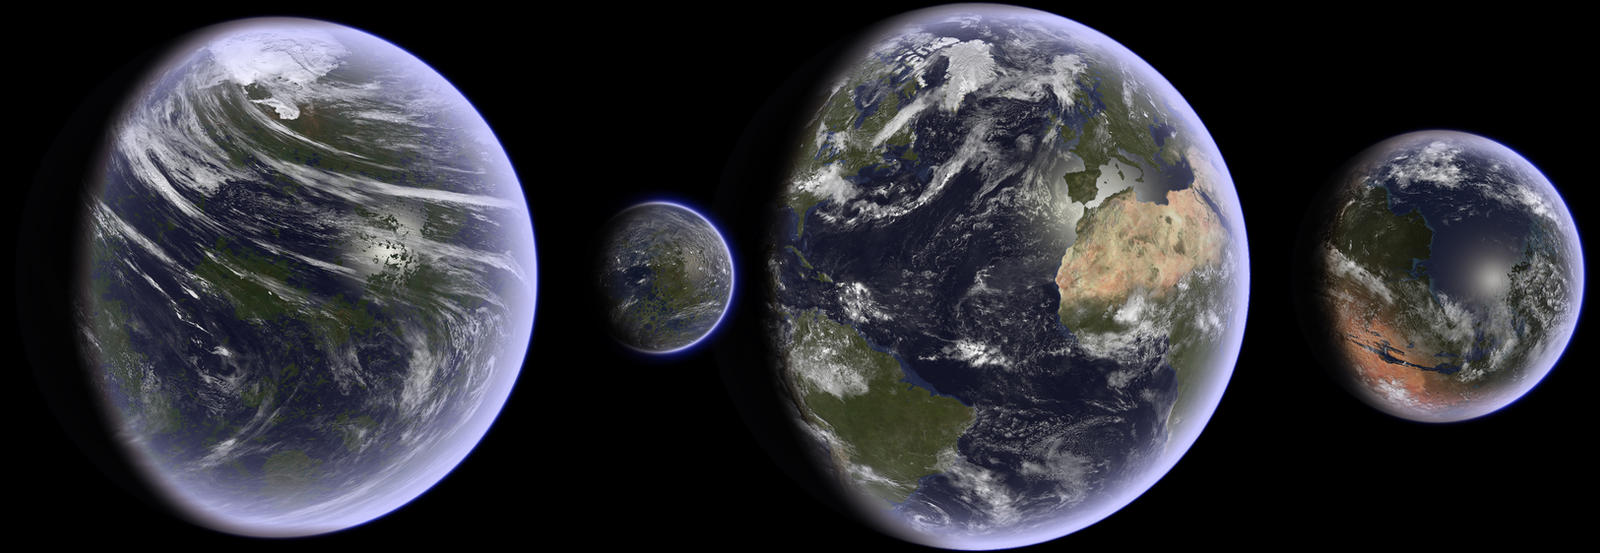 terraformed solar system with labels - photo #35